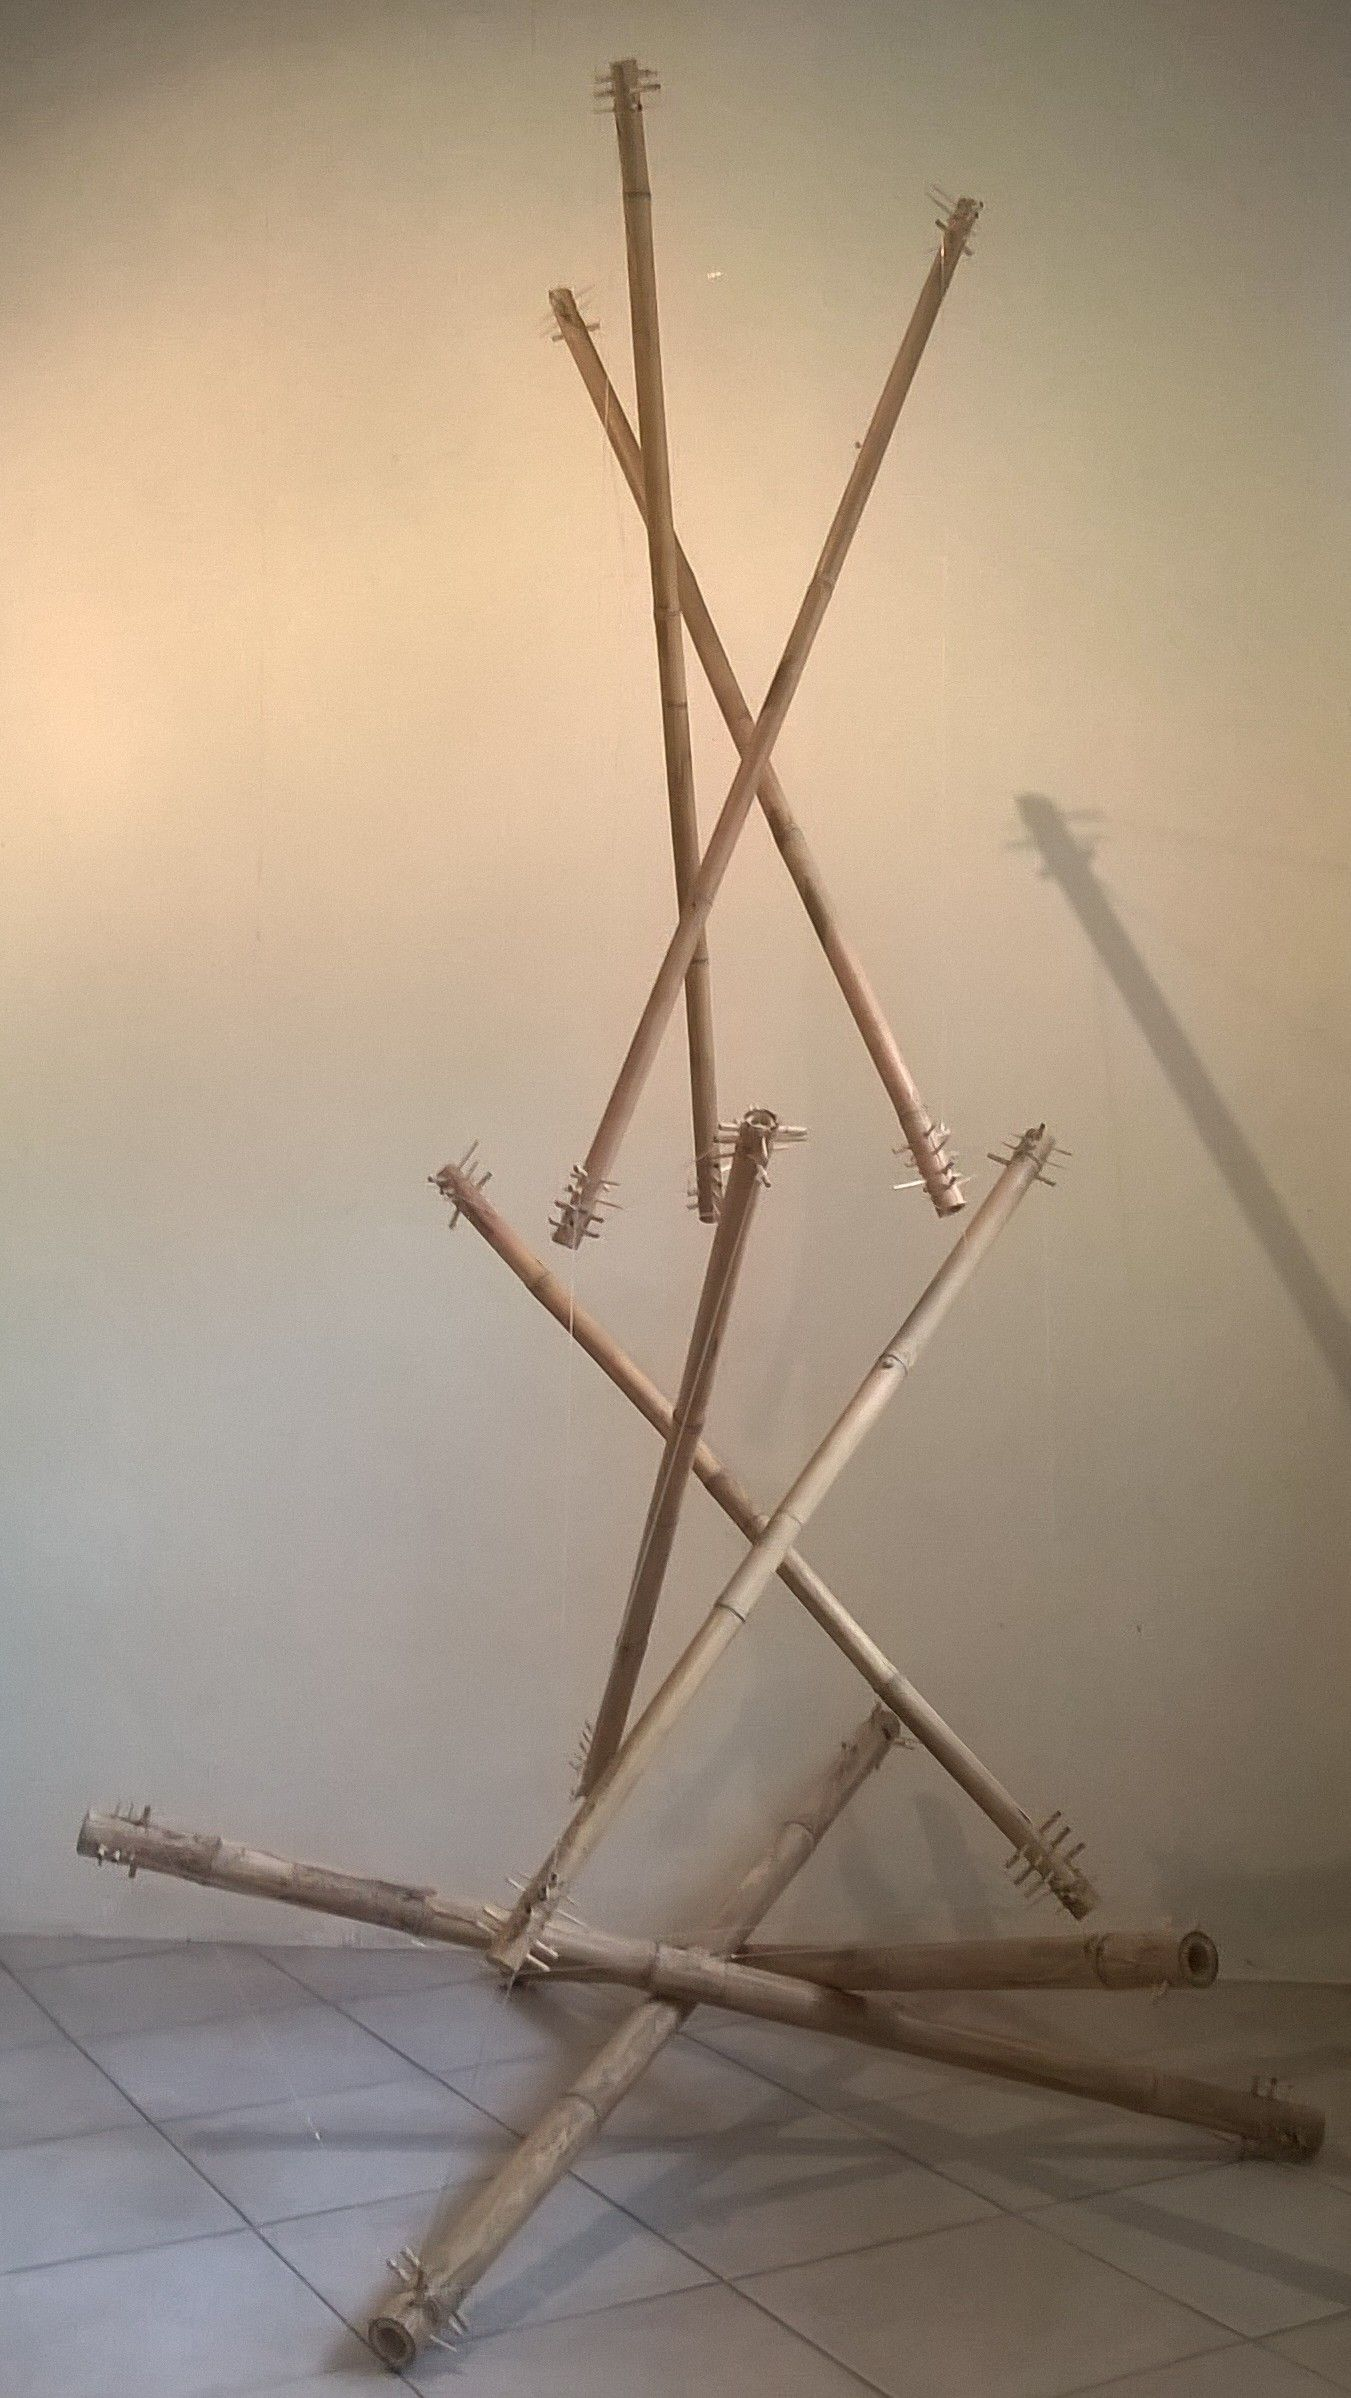 Tune-able tensegrity hatstand using bamboo and fishline string